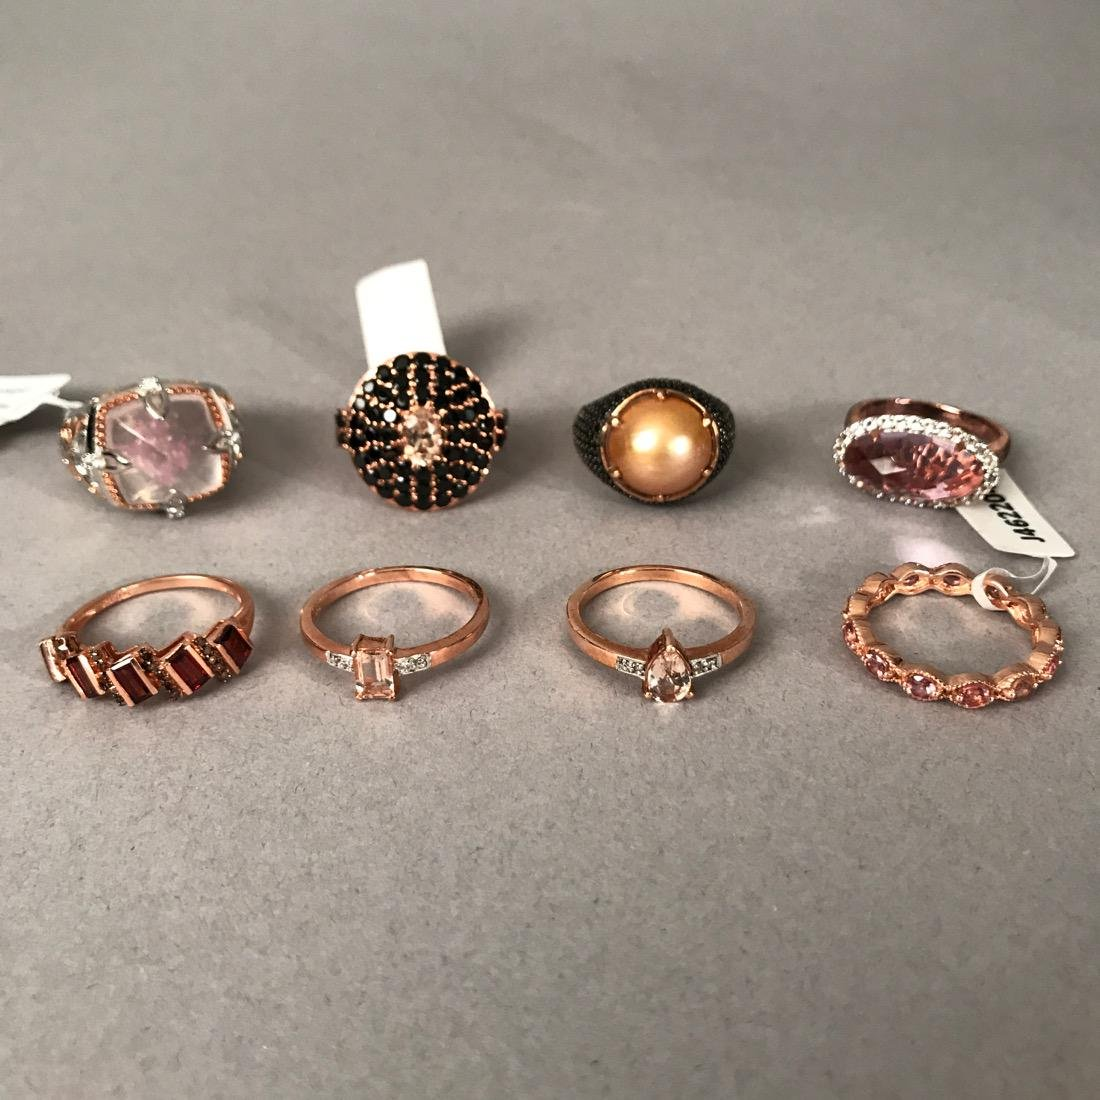 7 Sterling Silver Rings & 1 Bronze